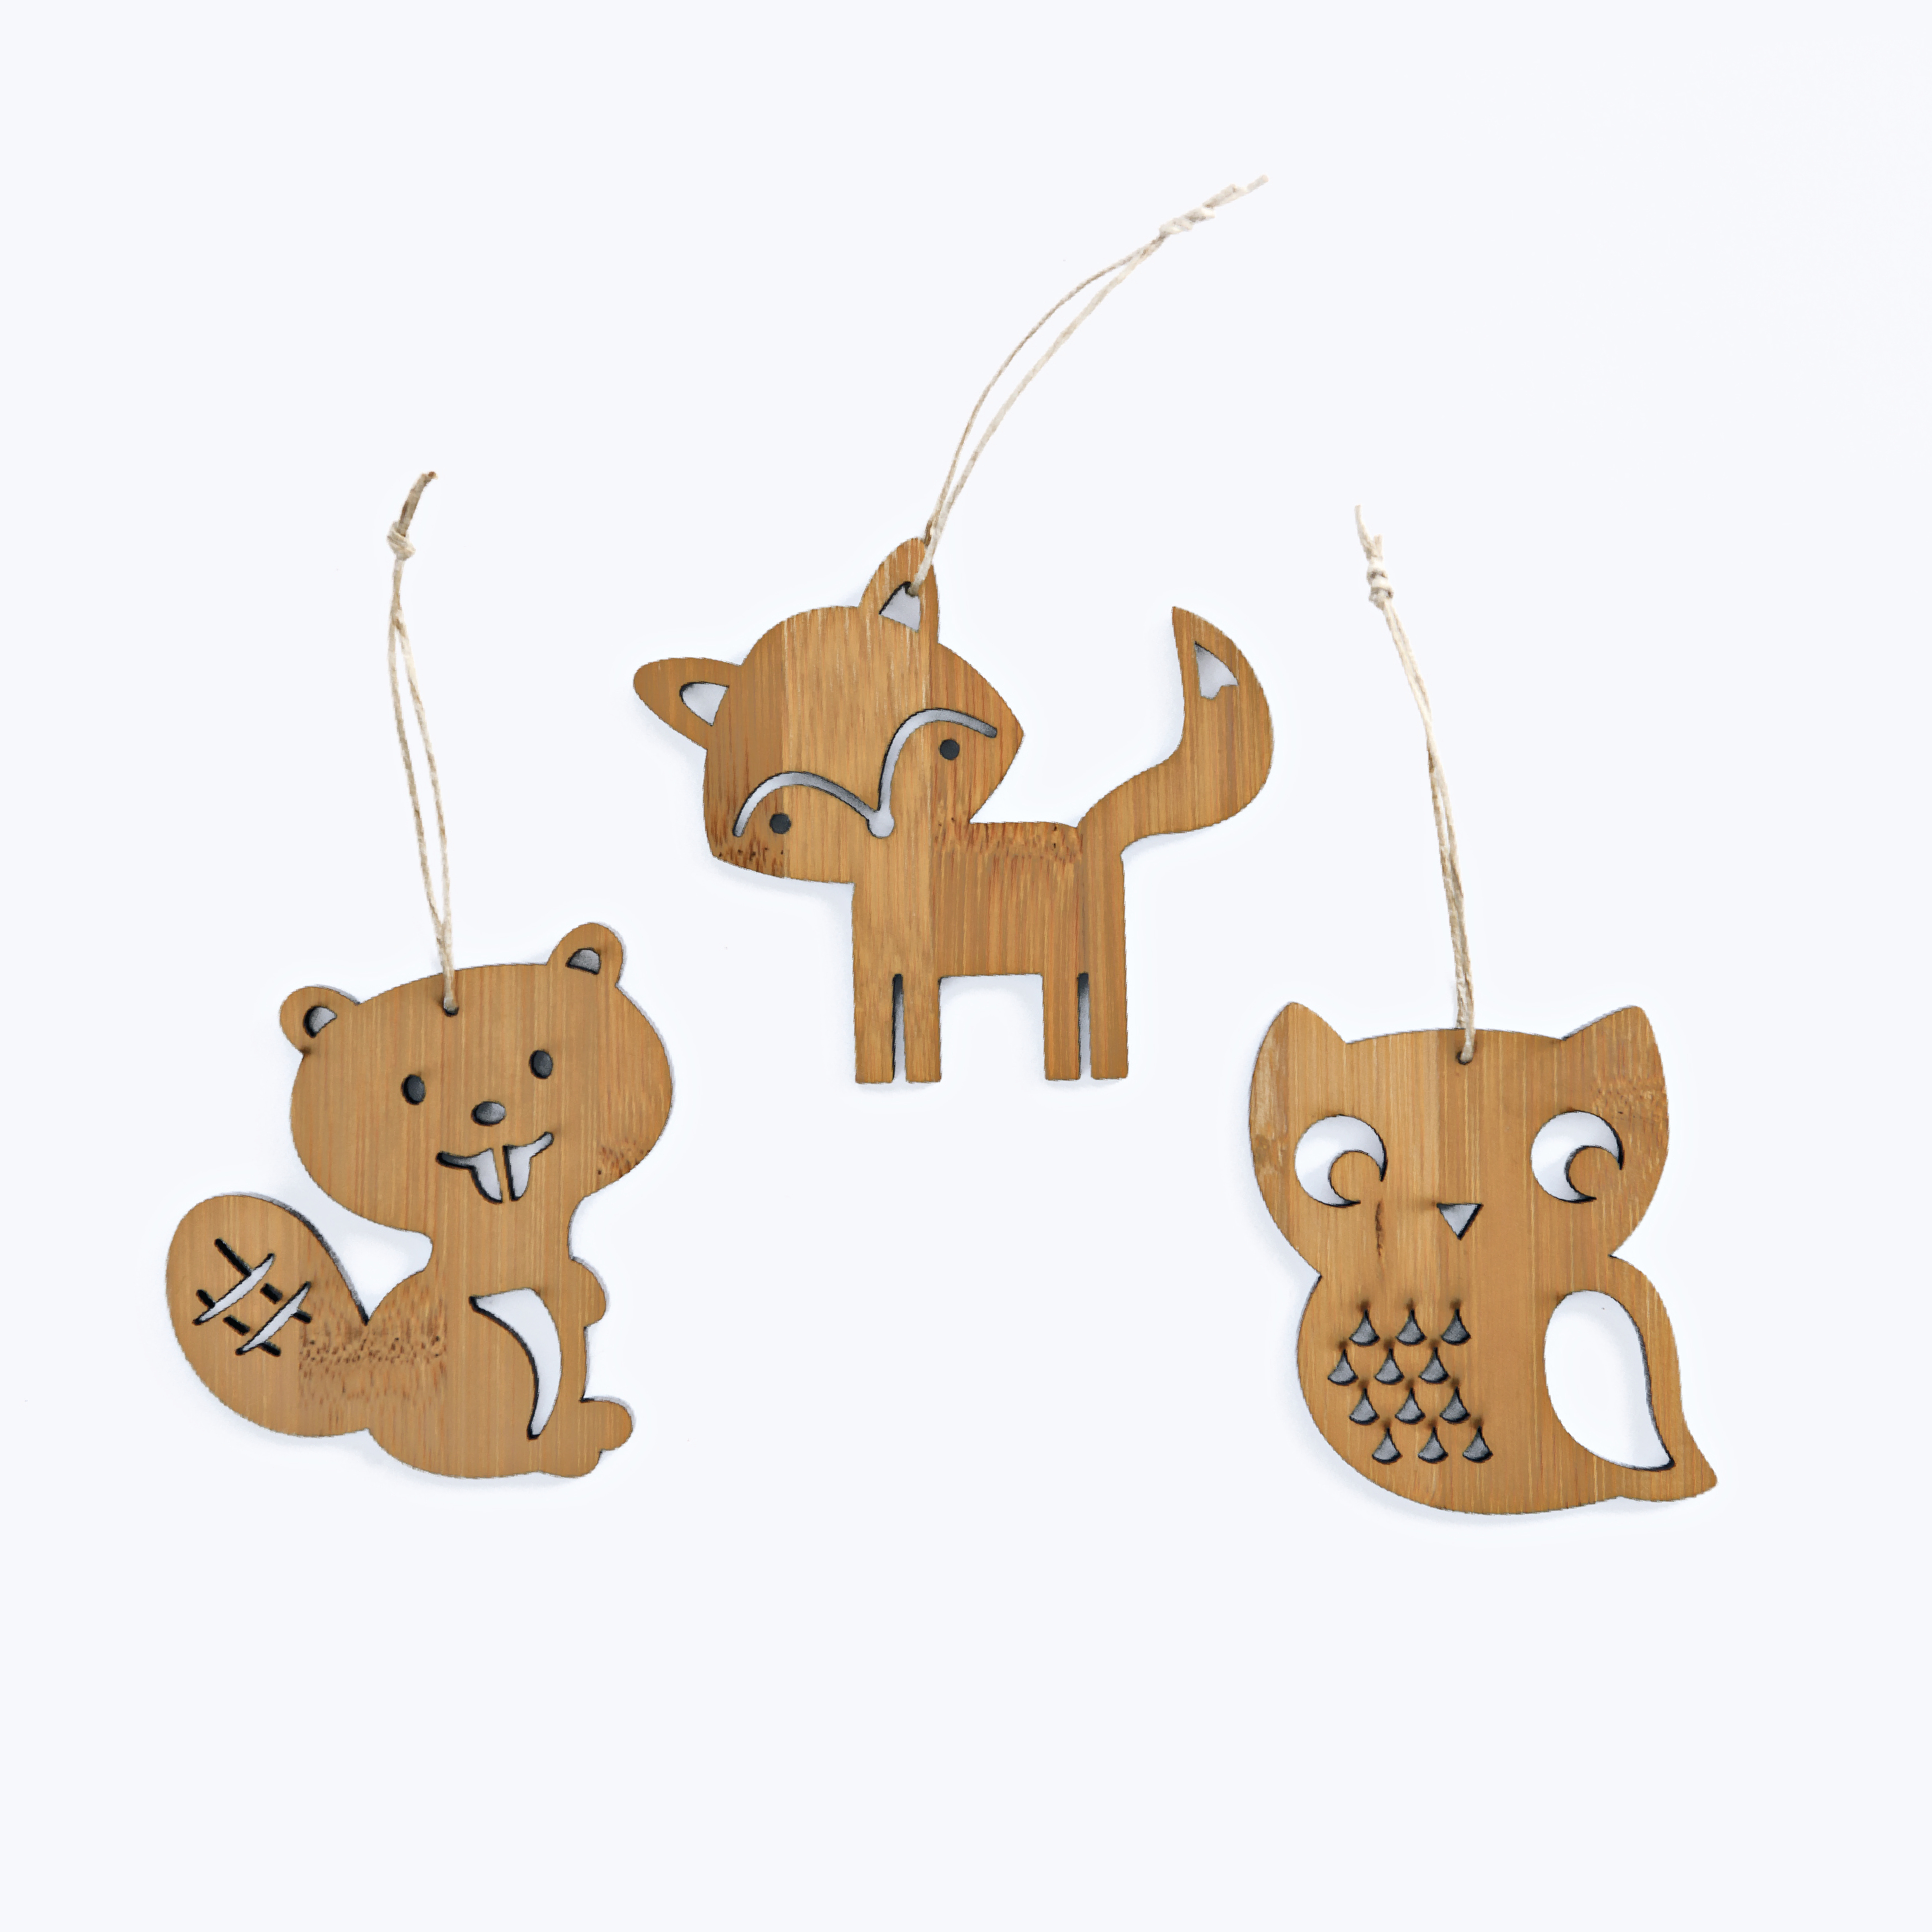 Animal ornaments - 3 Bamboo Christmas Ornaments Other View